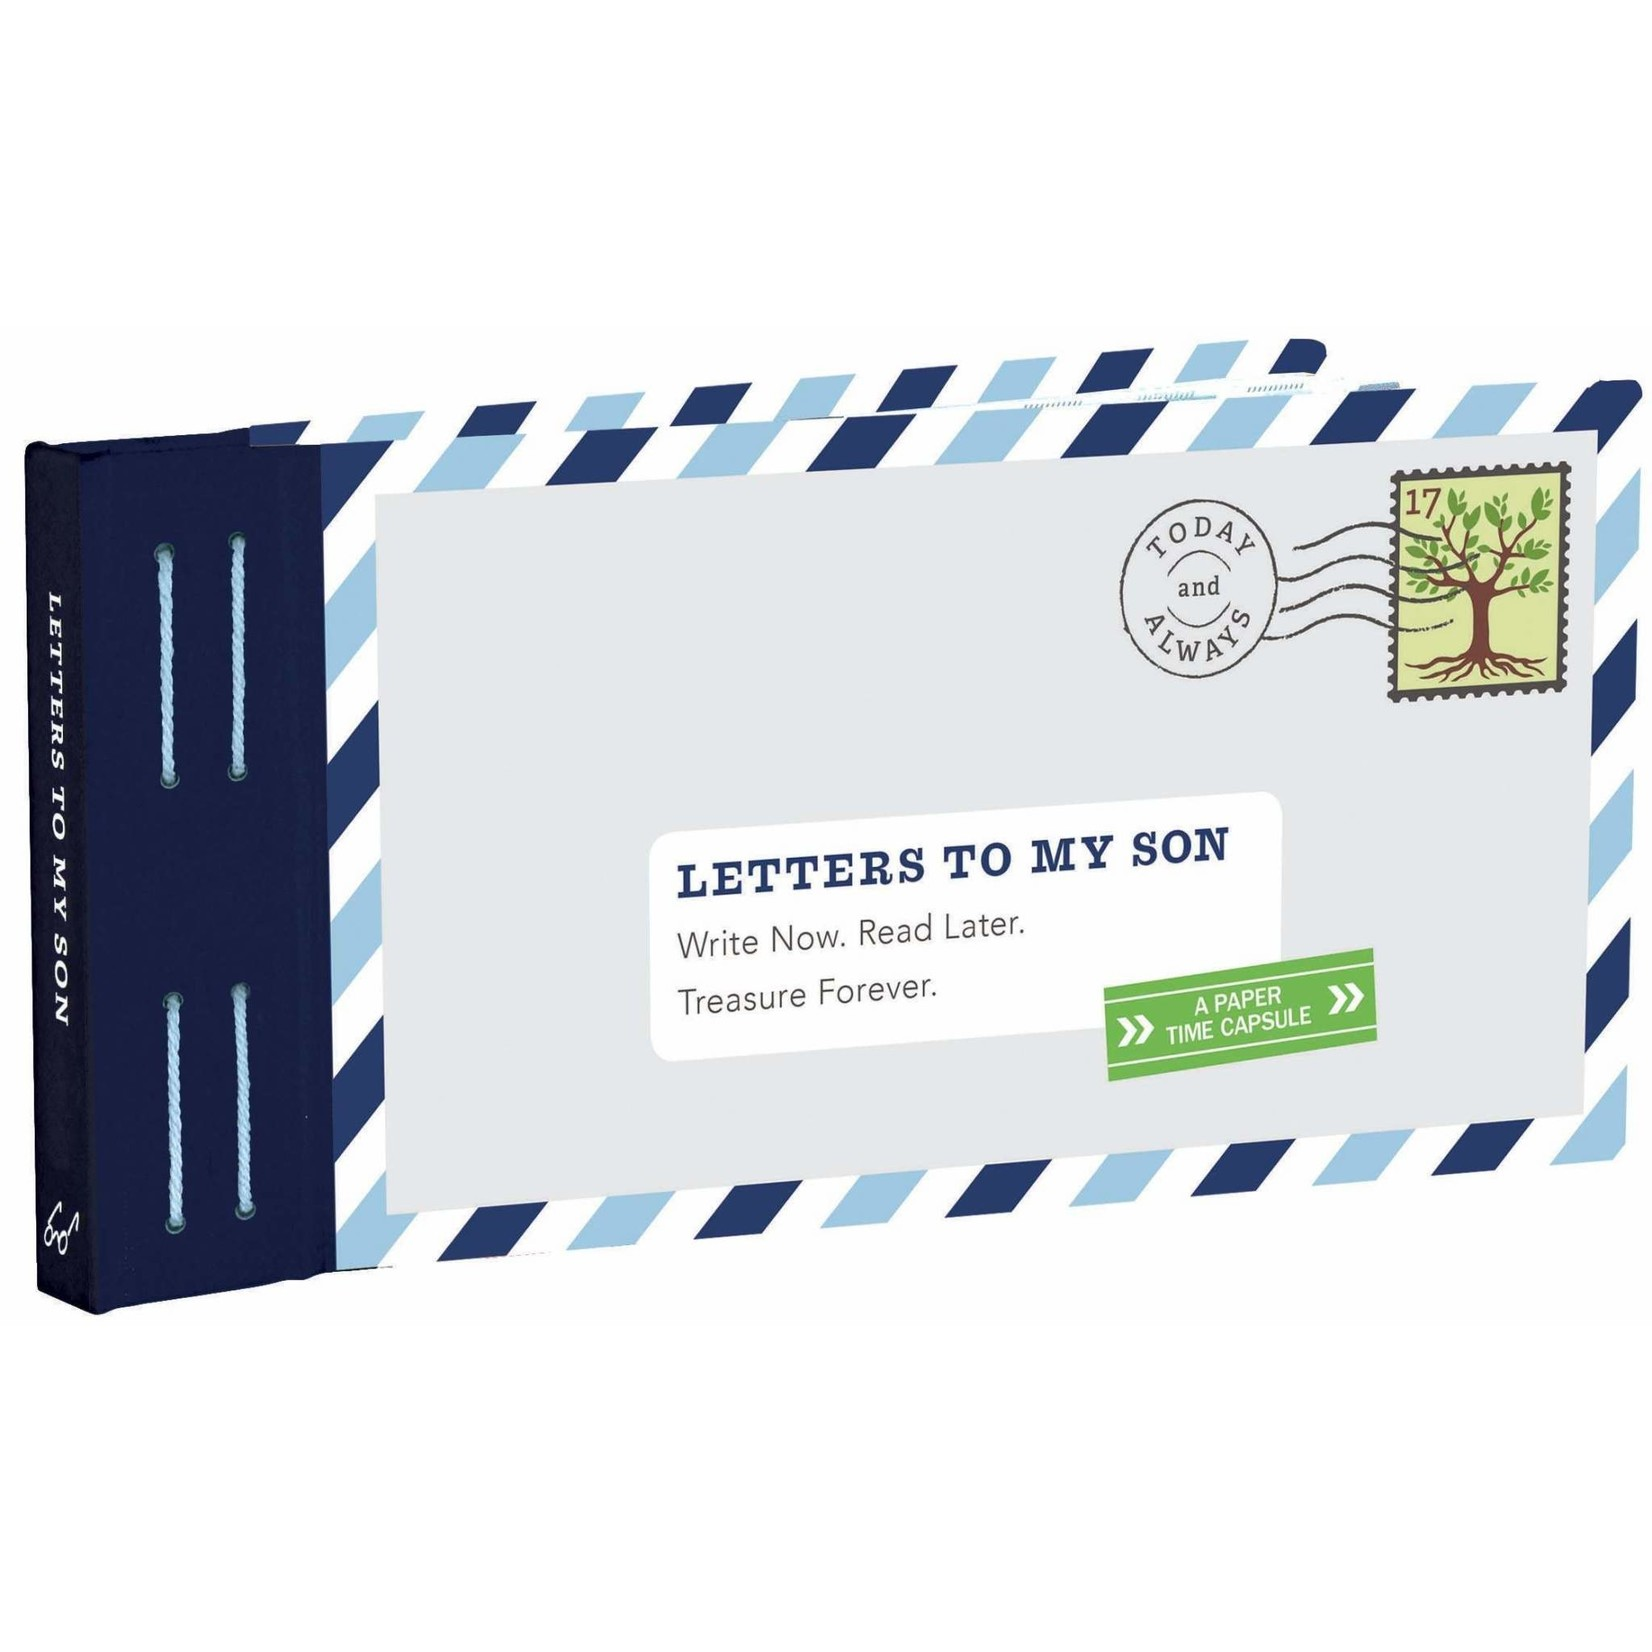 HARPER GROUP LETTERS TO MY SON